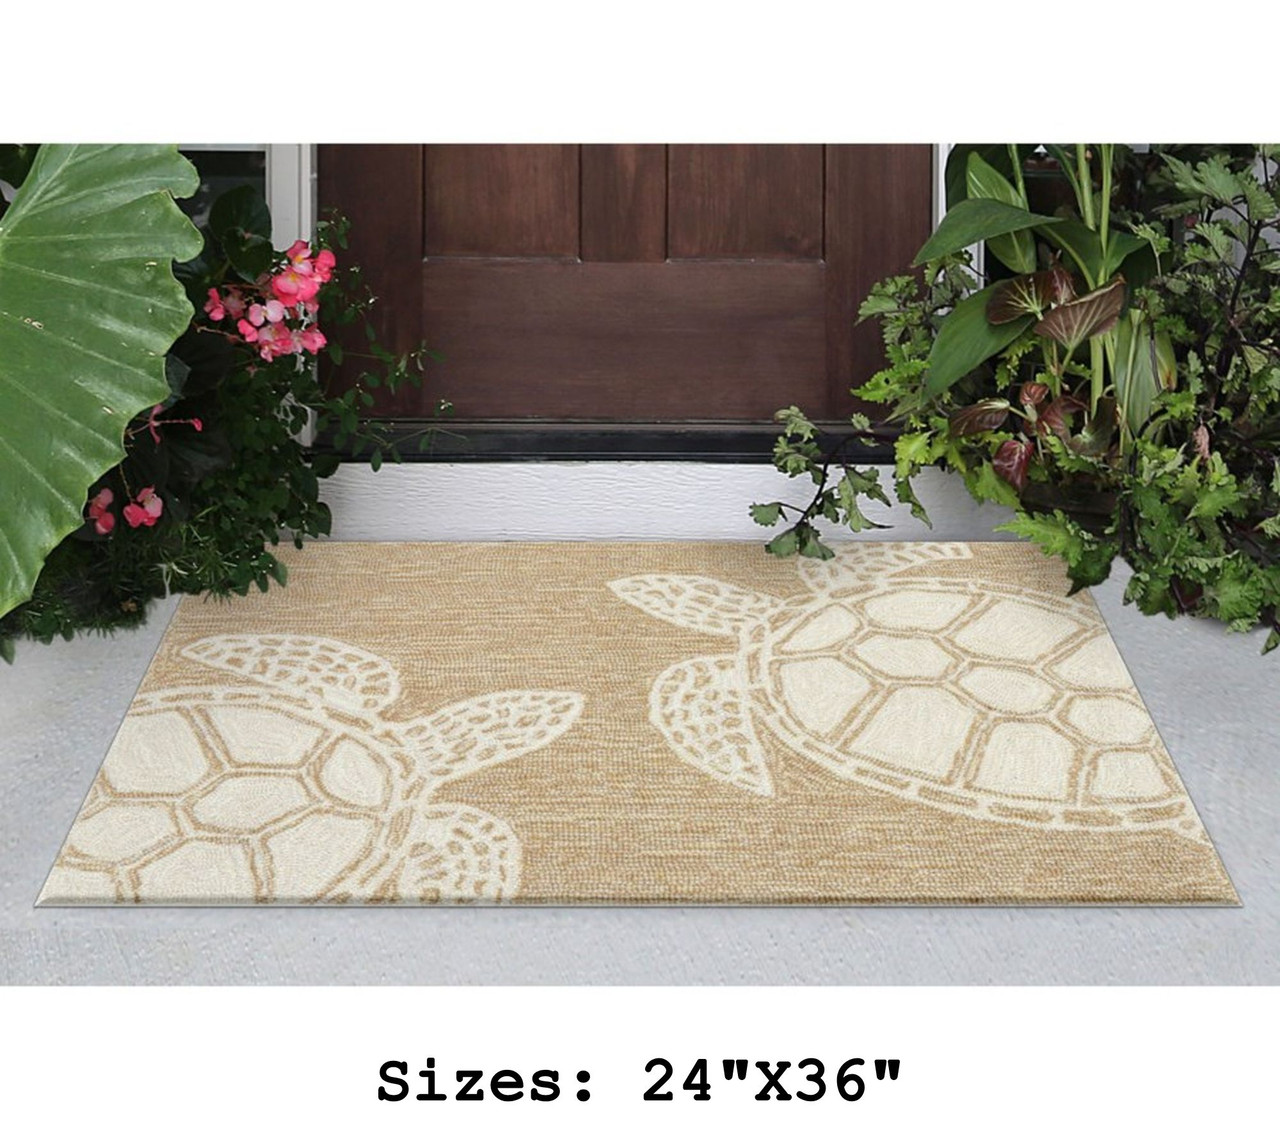 Capri Turtle Indoor/Outdoor Rug - Neutral - Small Rectangle Lifestyle